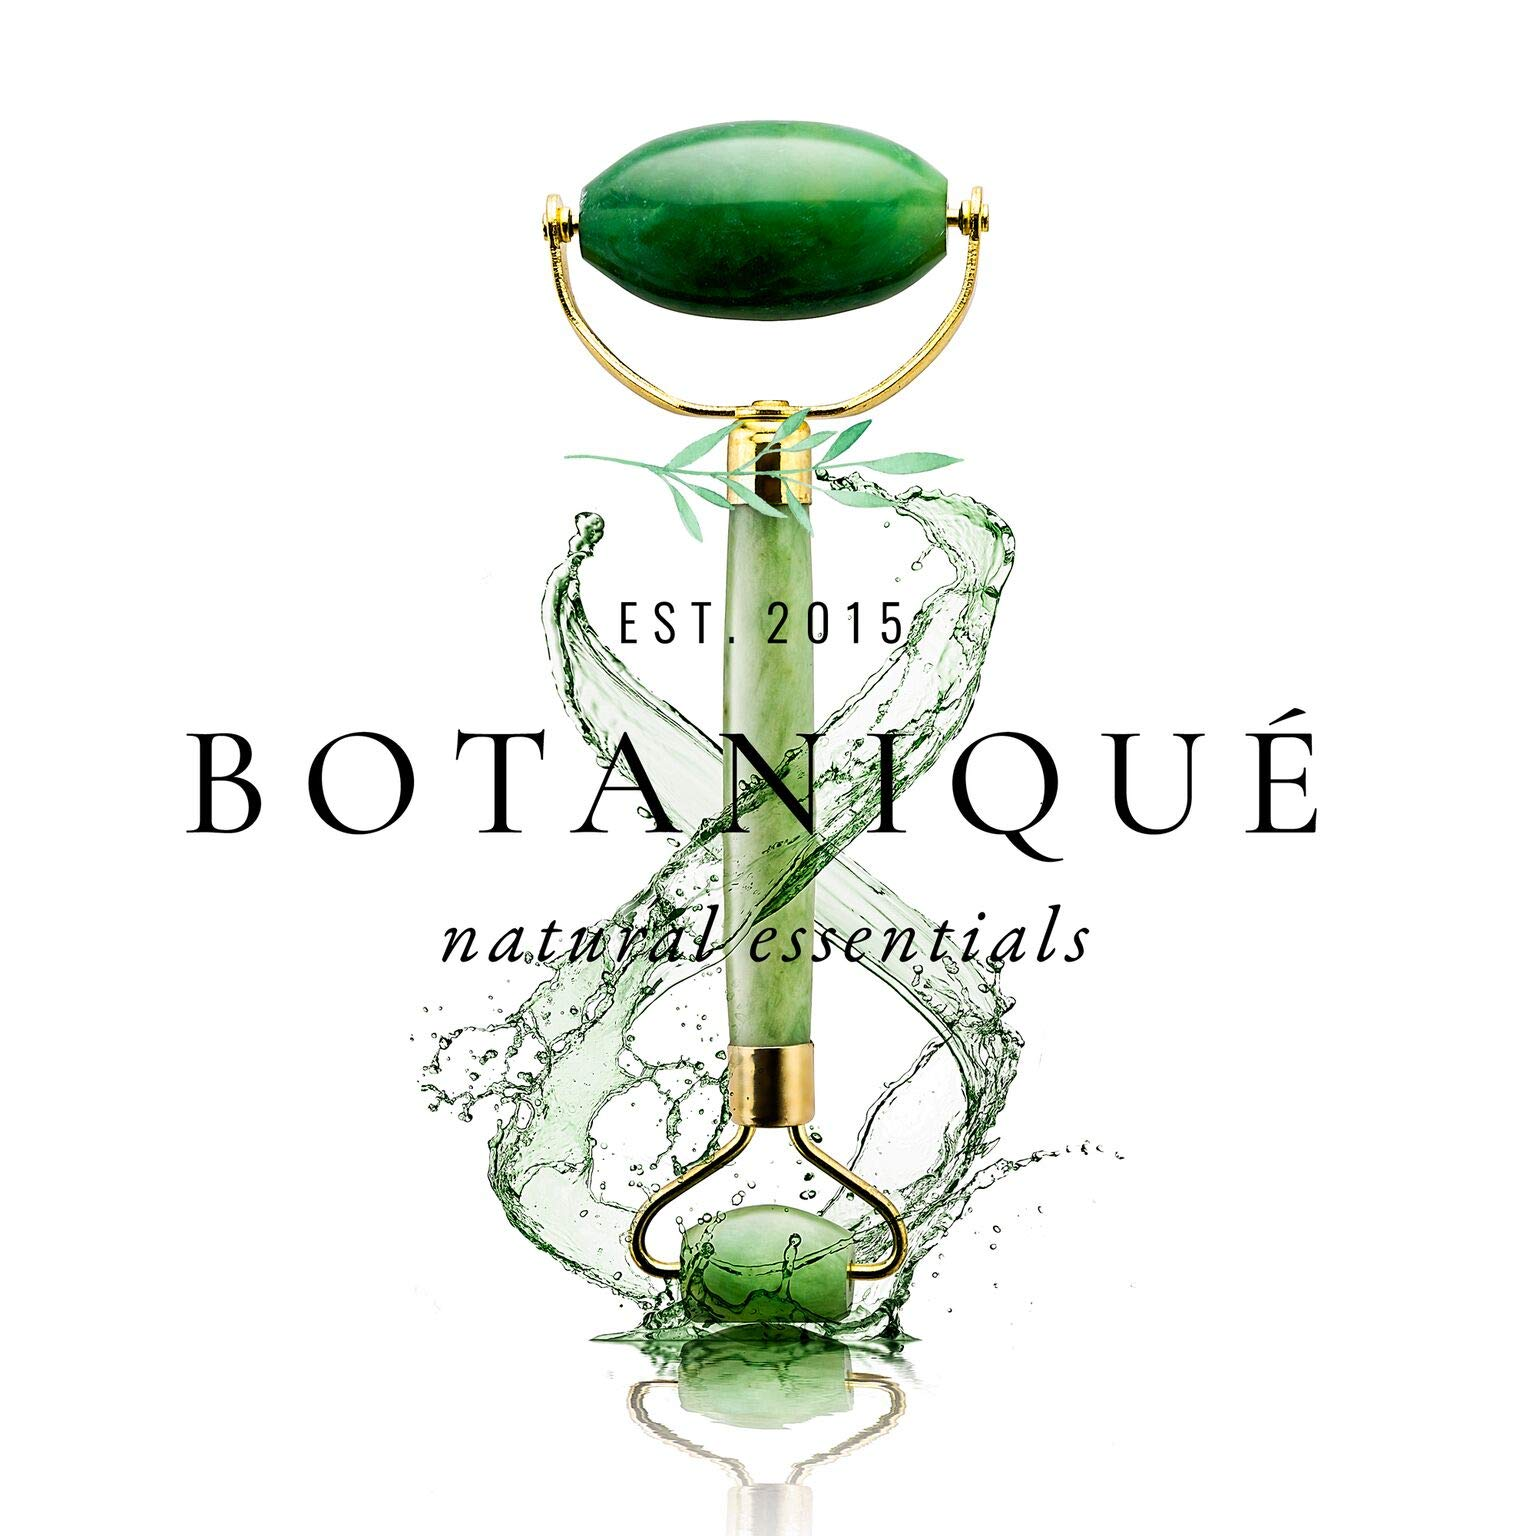 The Original Botaniqué Anti Aging Jade Roller||100% All-Natural Facial Massager Roller for Healing, Facial Slimming, Wrinkles||Face Neck Body Eyes||Rejuvenates Skin Clears Toxins Reduces Puffiness